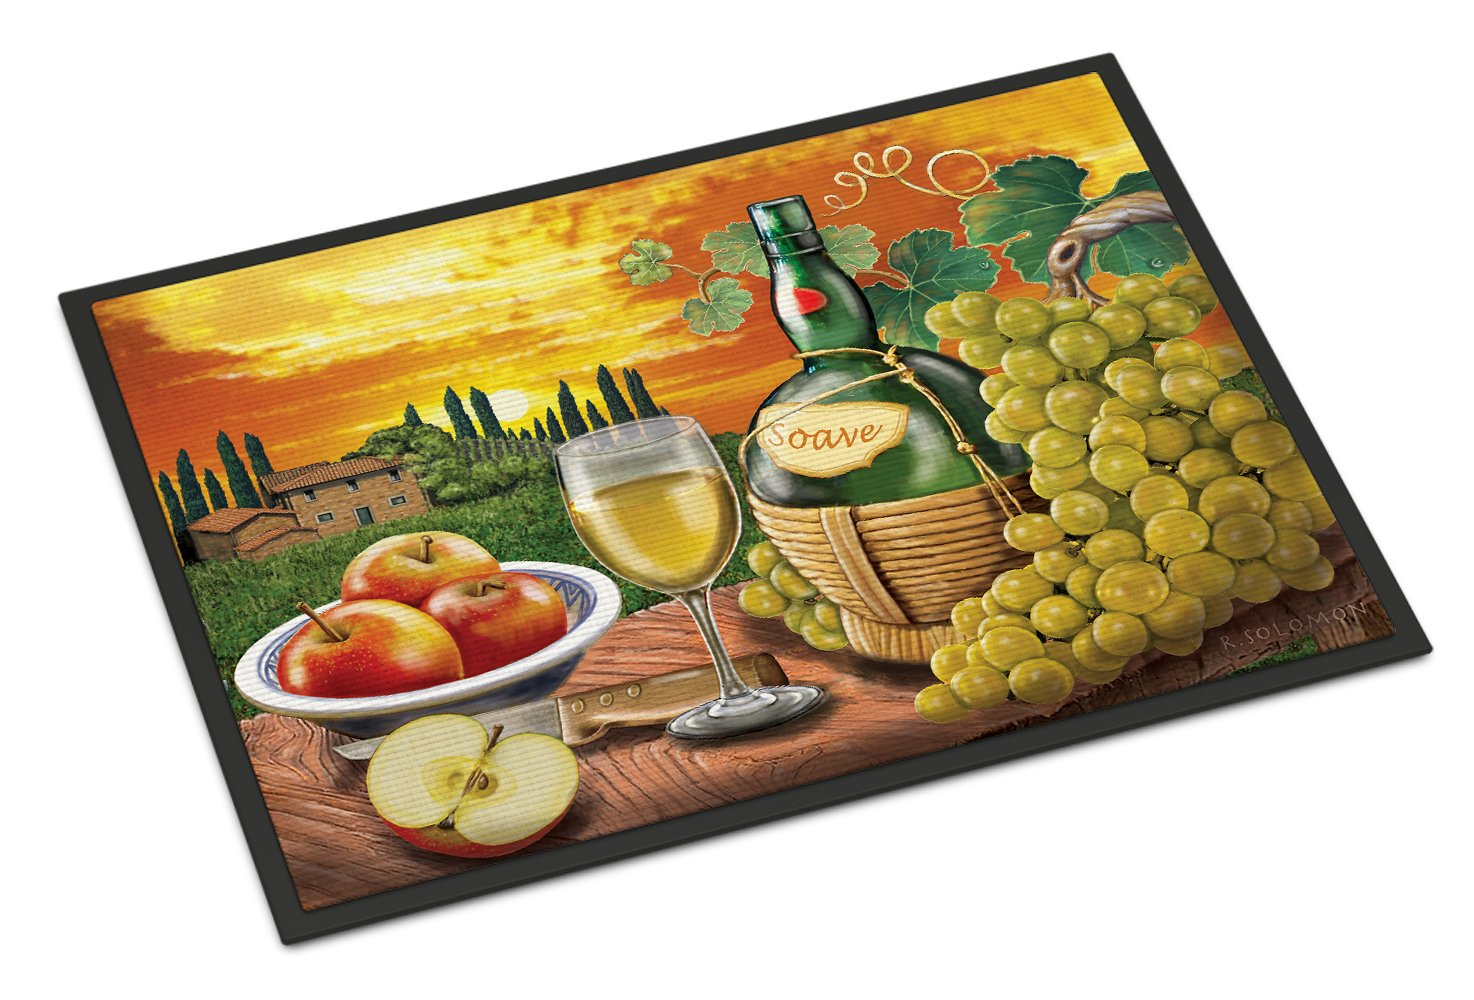 Soave, Apple, Wine and Cheese Indoor or Outdoor Mat 24x36 PRS4027JMAT by Caroline's Treasures